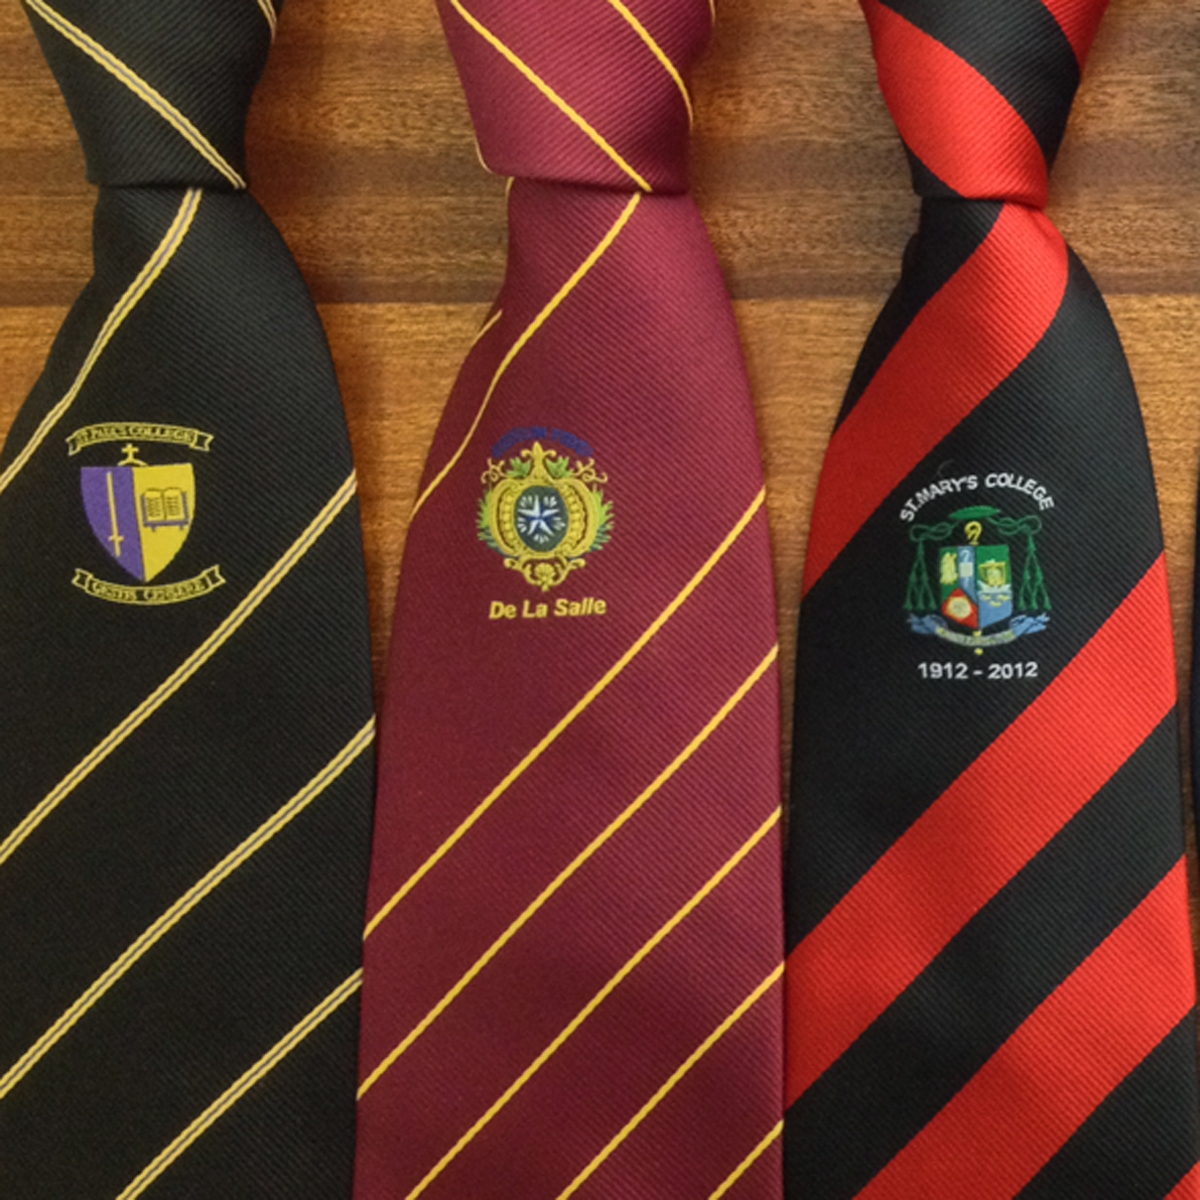 Club corporate ties schools ccuart Gallery